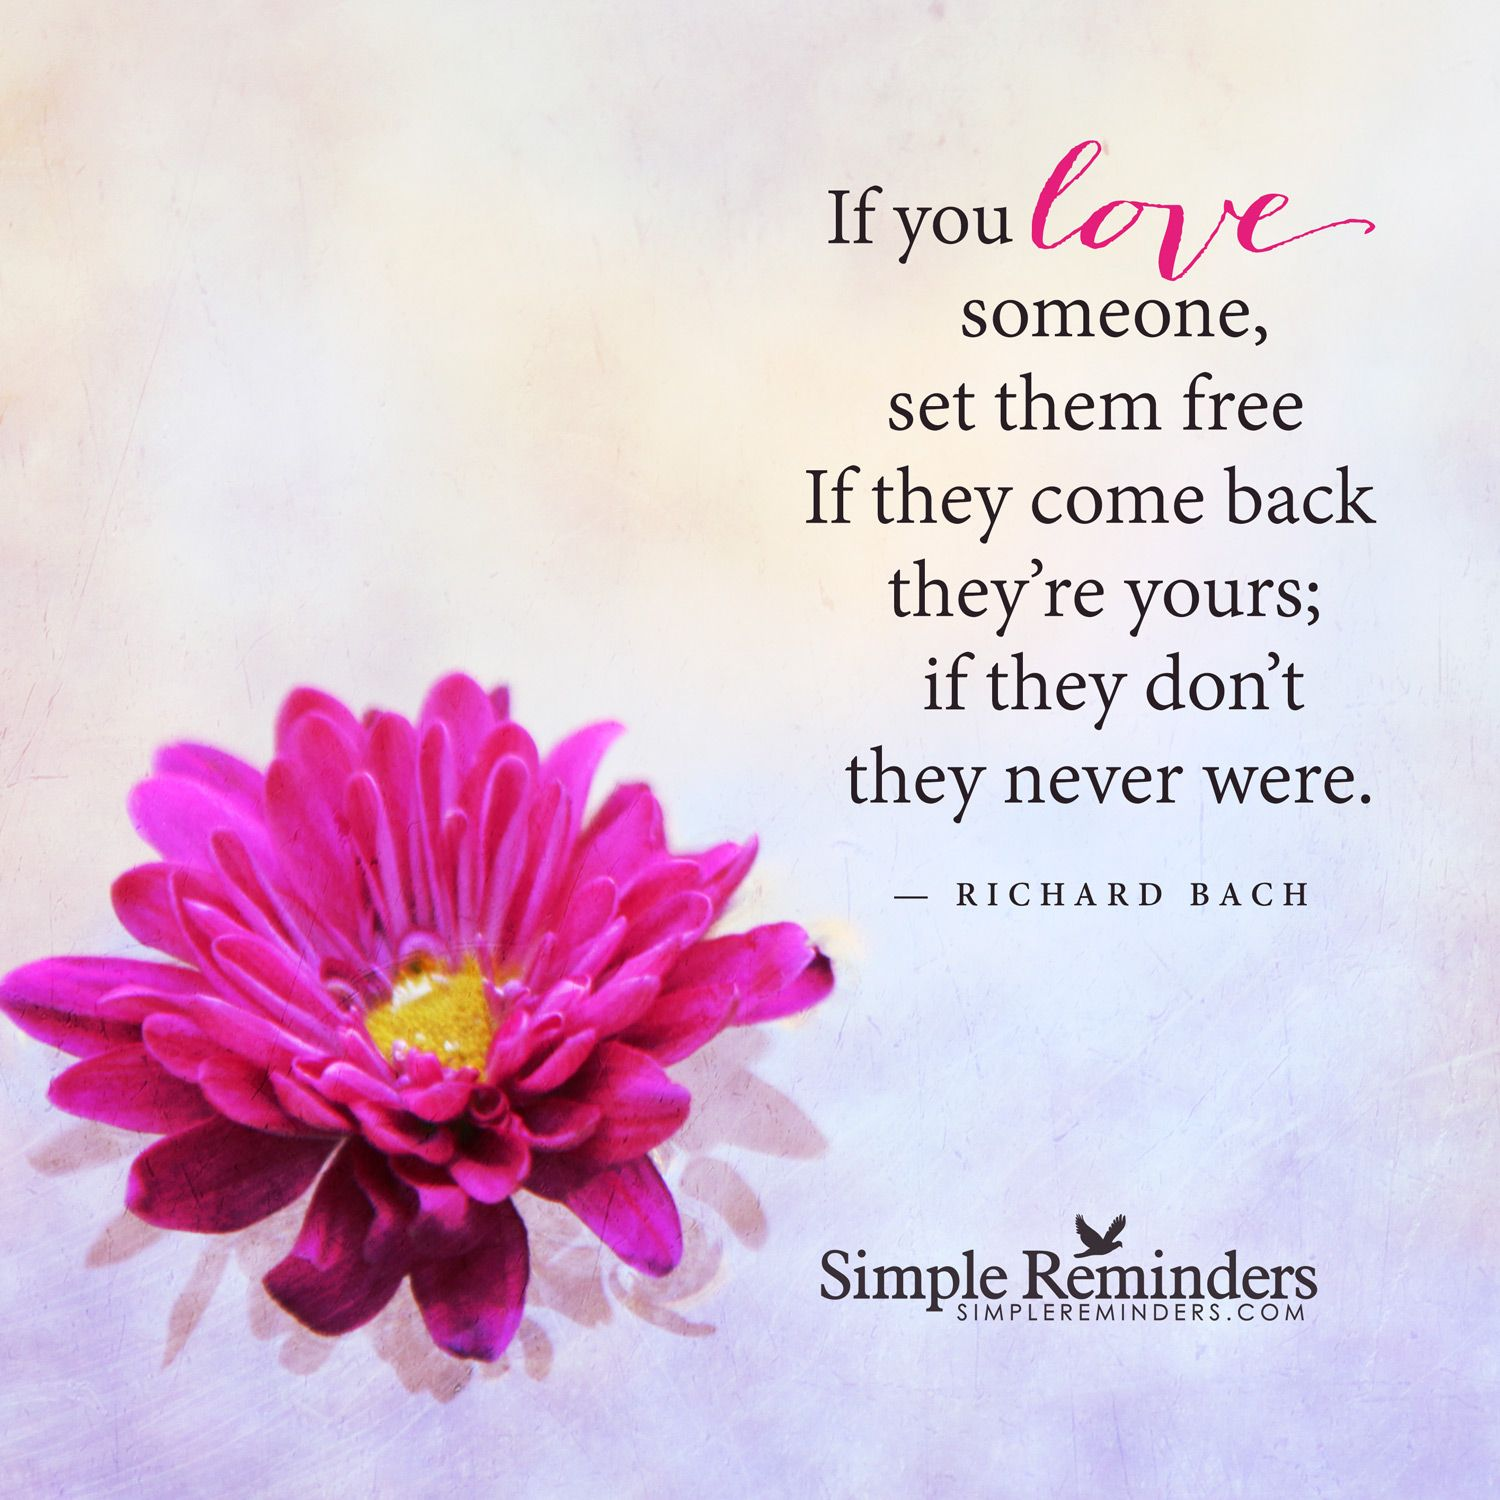 Simple Reminders New Posts For 07 25 2015 Simple Reminders If You Love Someone Simple Reminders Quotes